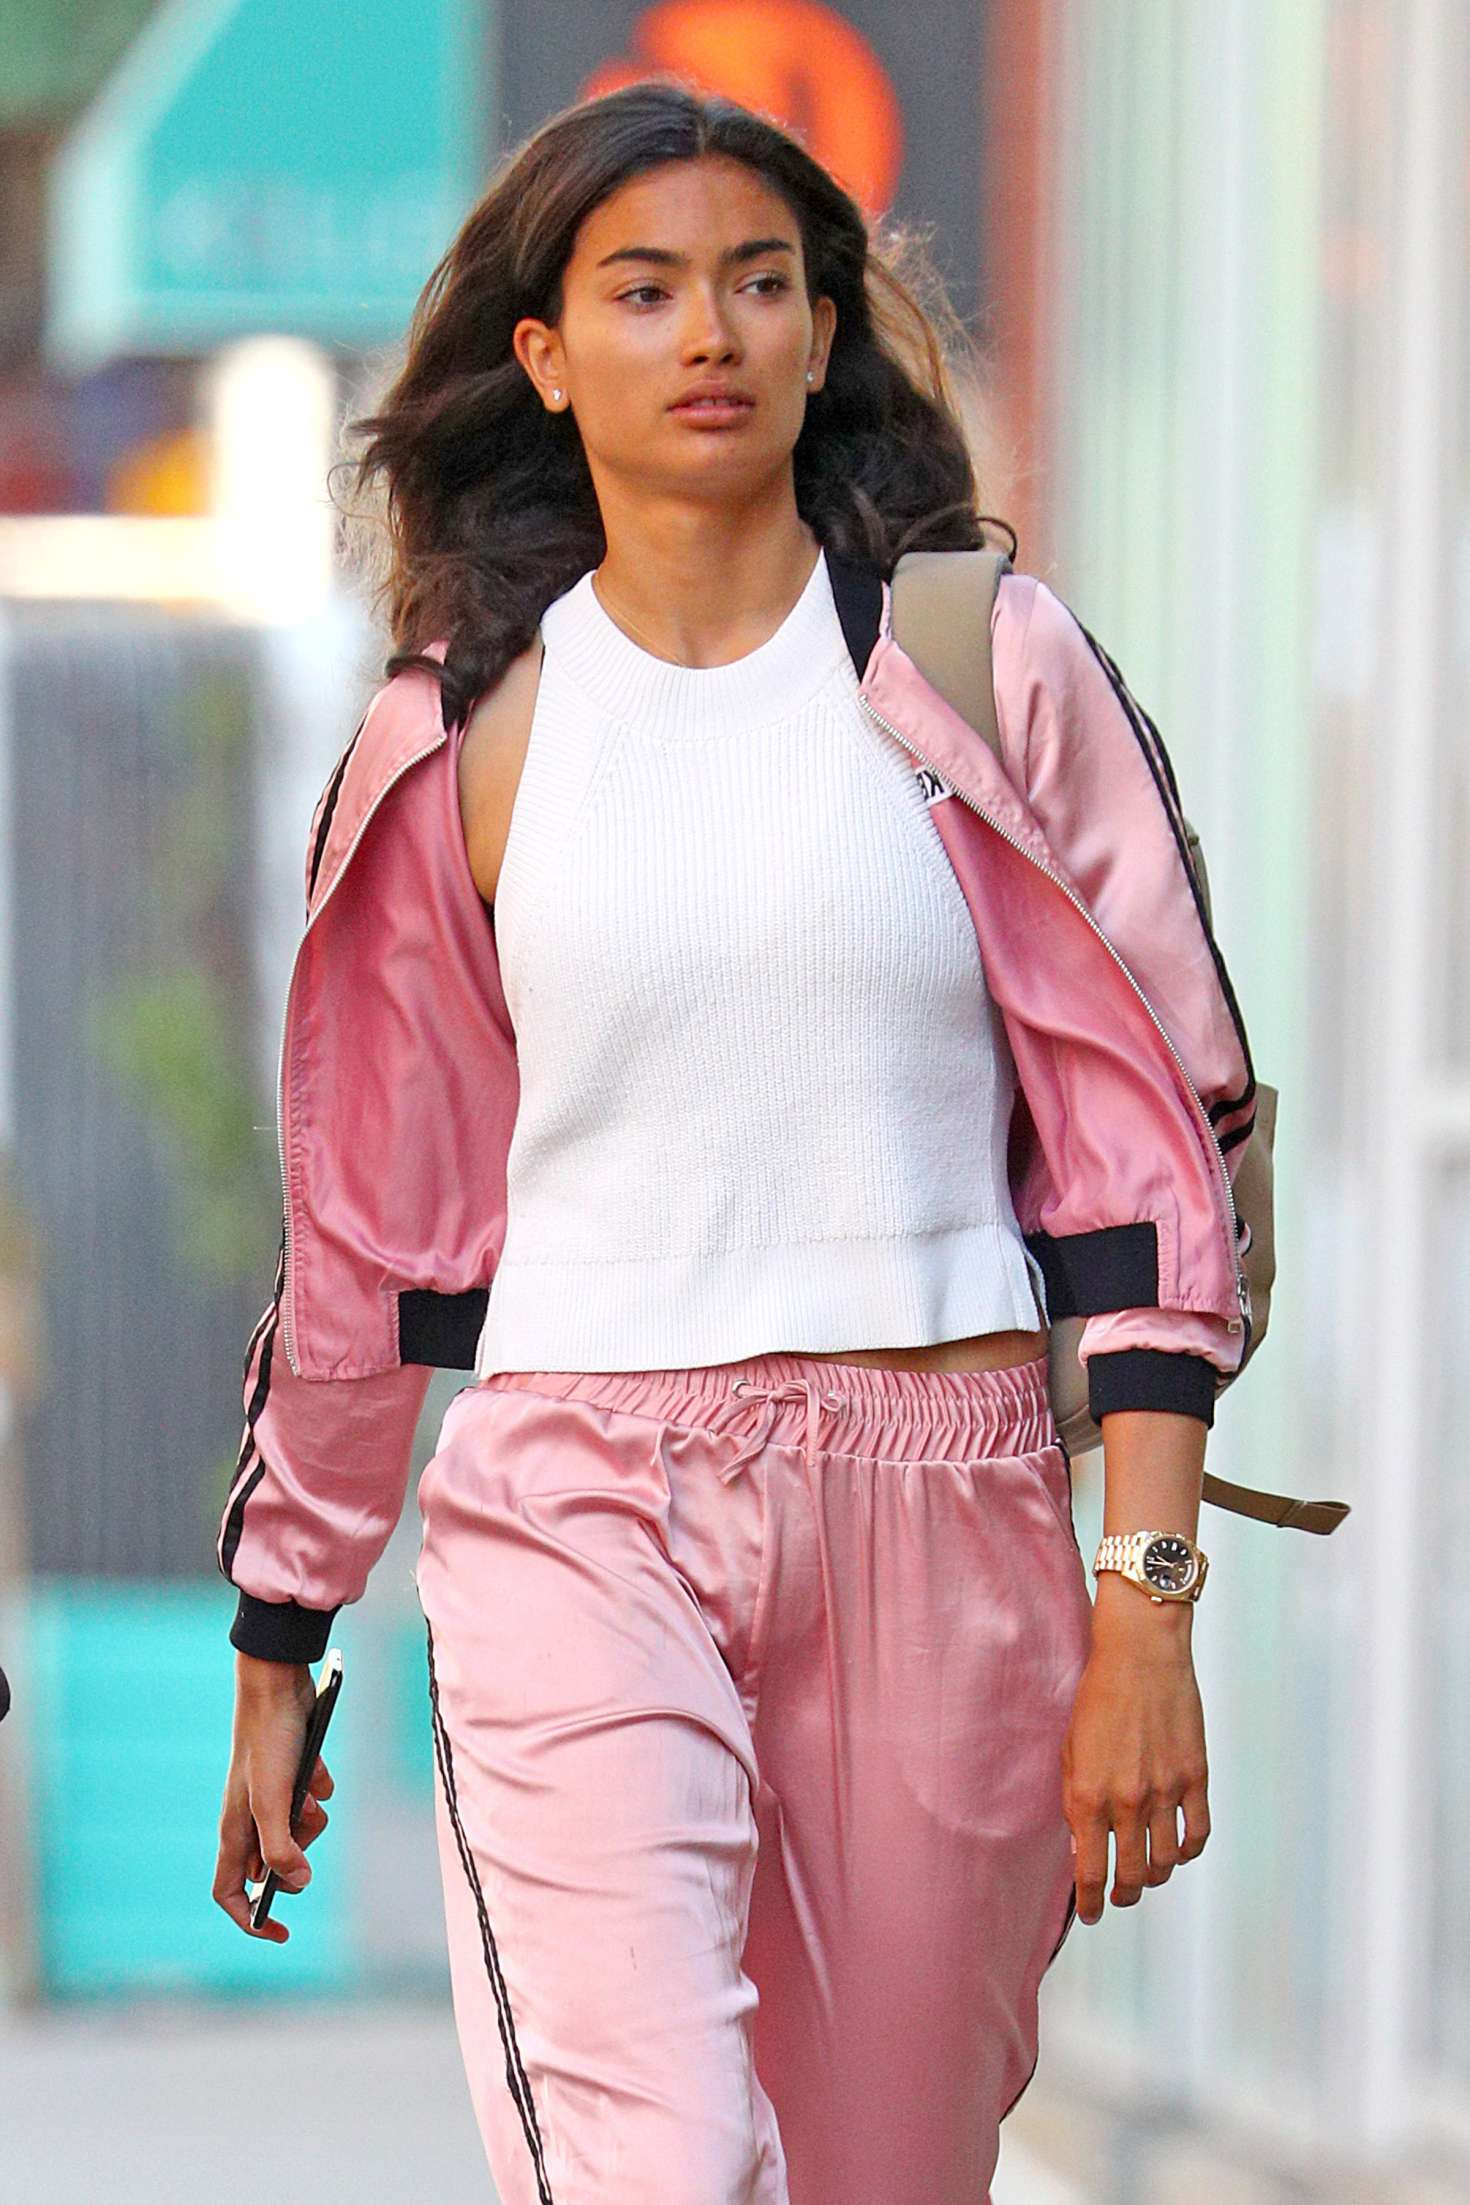 Kelly Gale in Bright Pink Tracksuit - Out in New York City